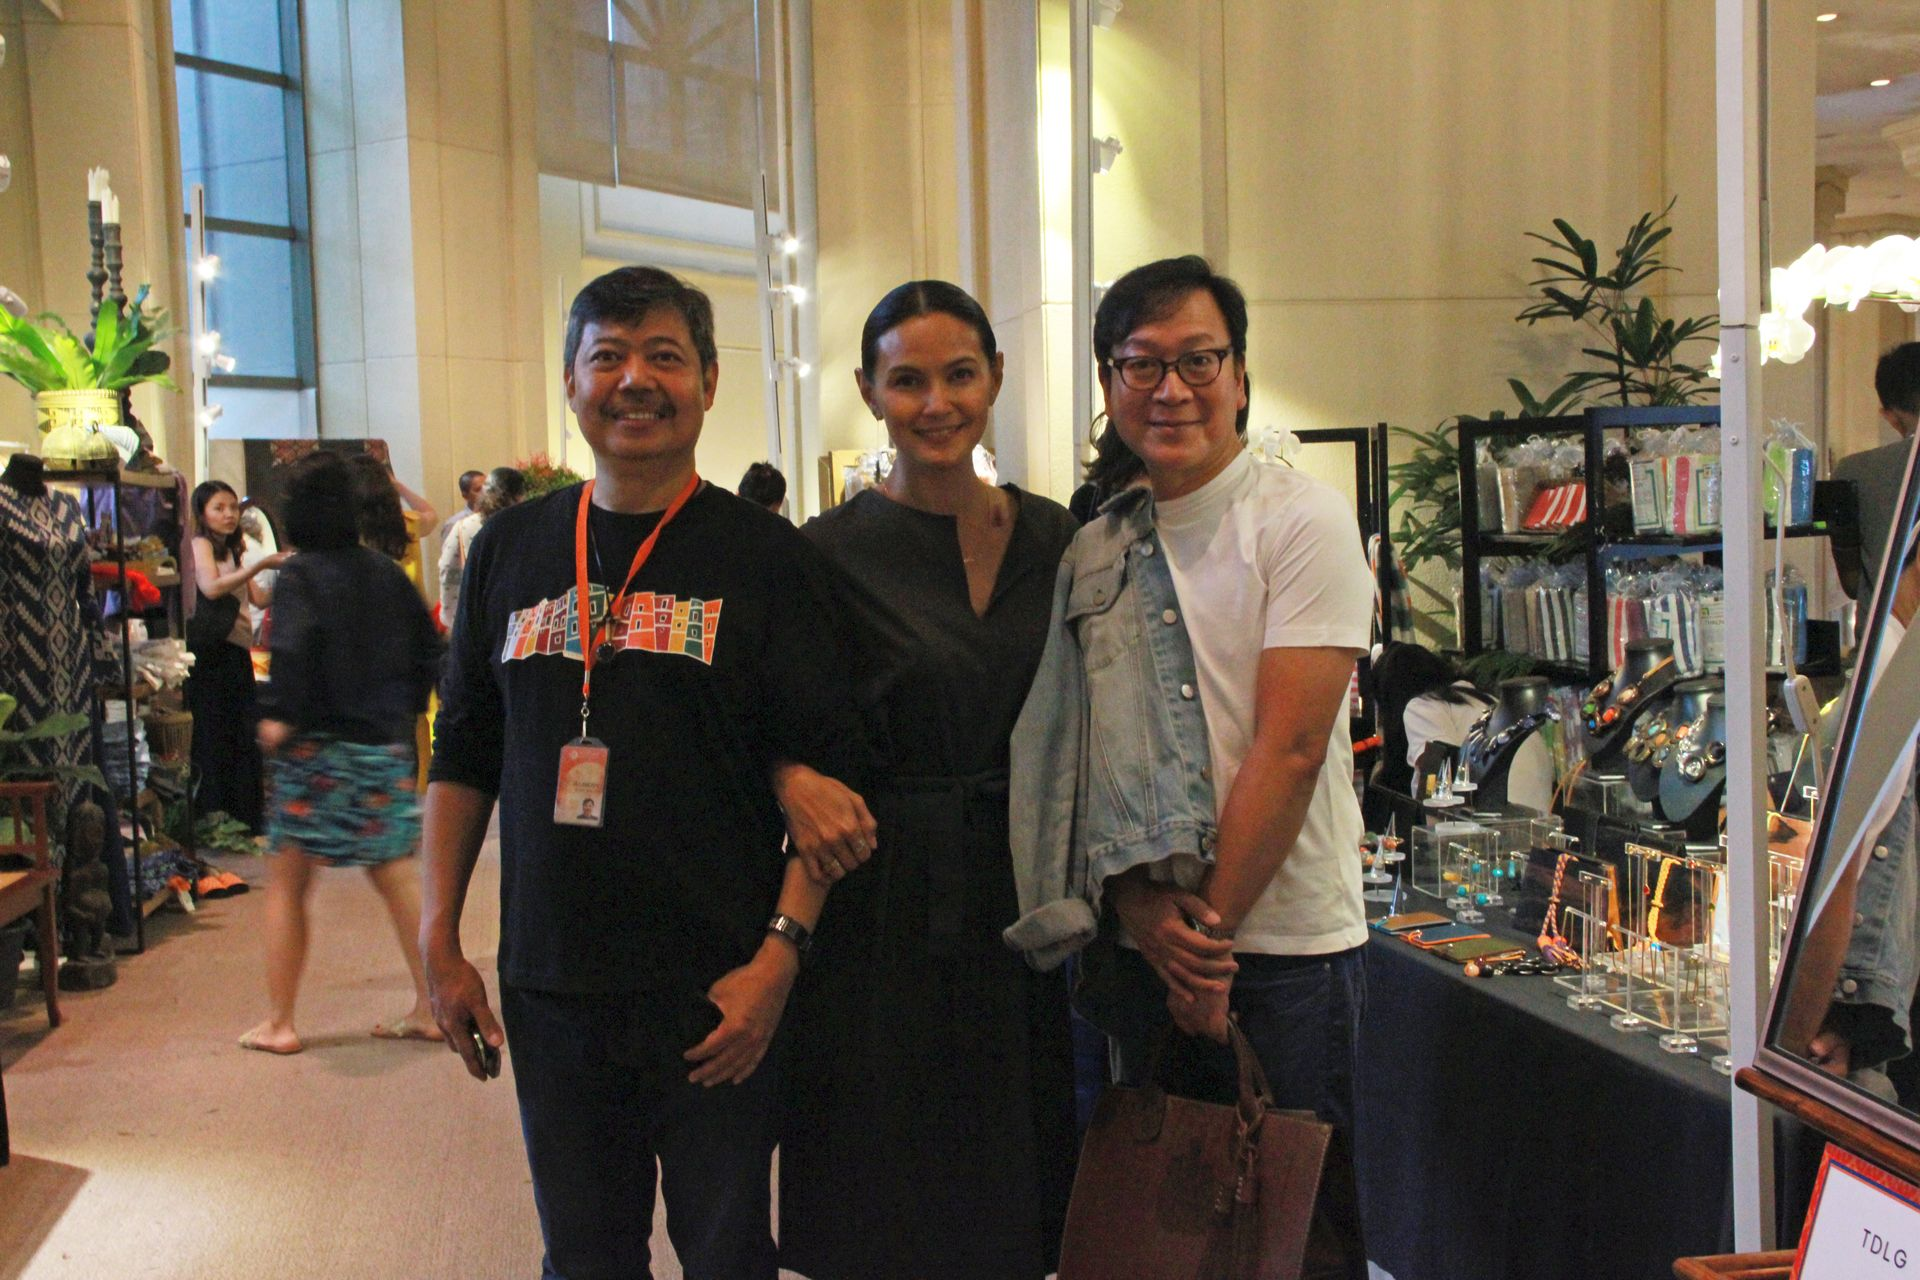 MFPI's Albert Avellana with exhibitor Tweety De Leon and designer Jojie Lloren